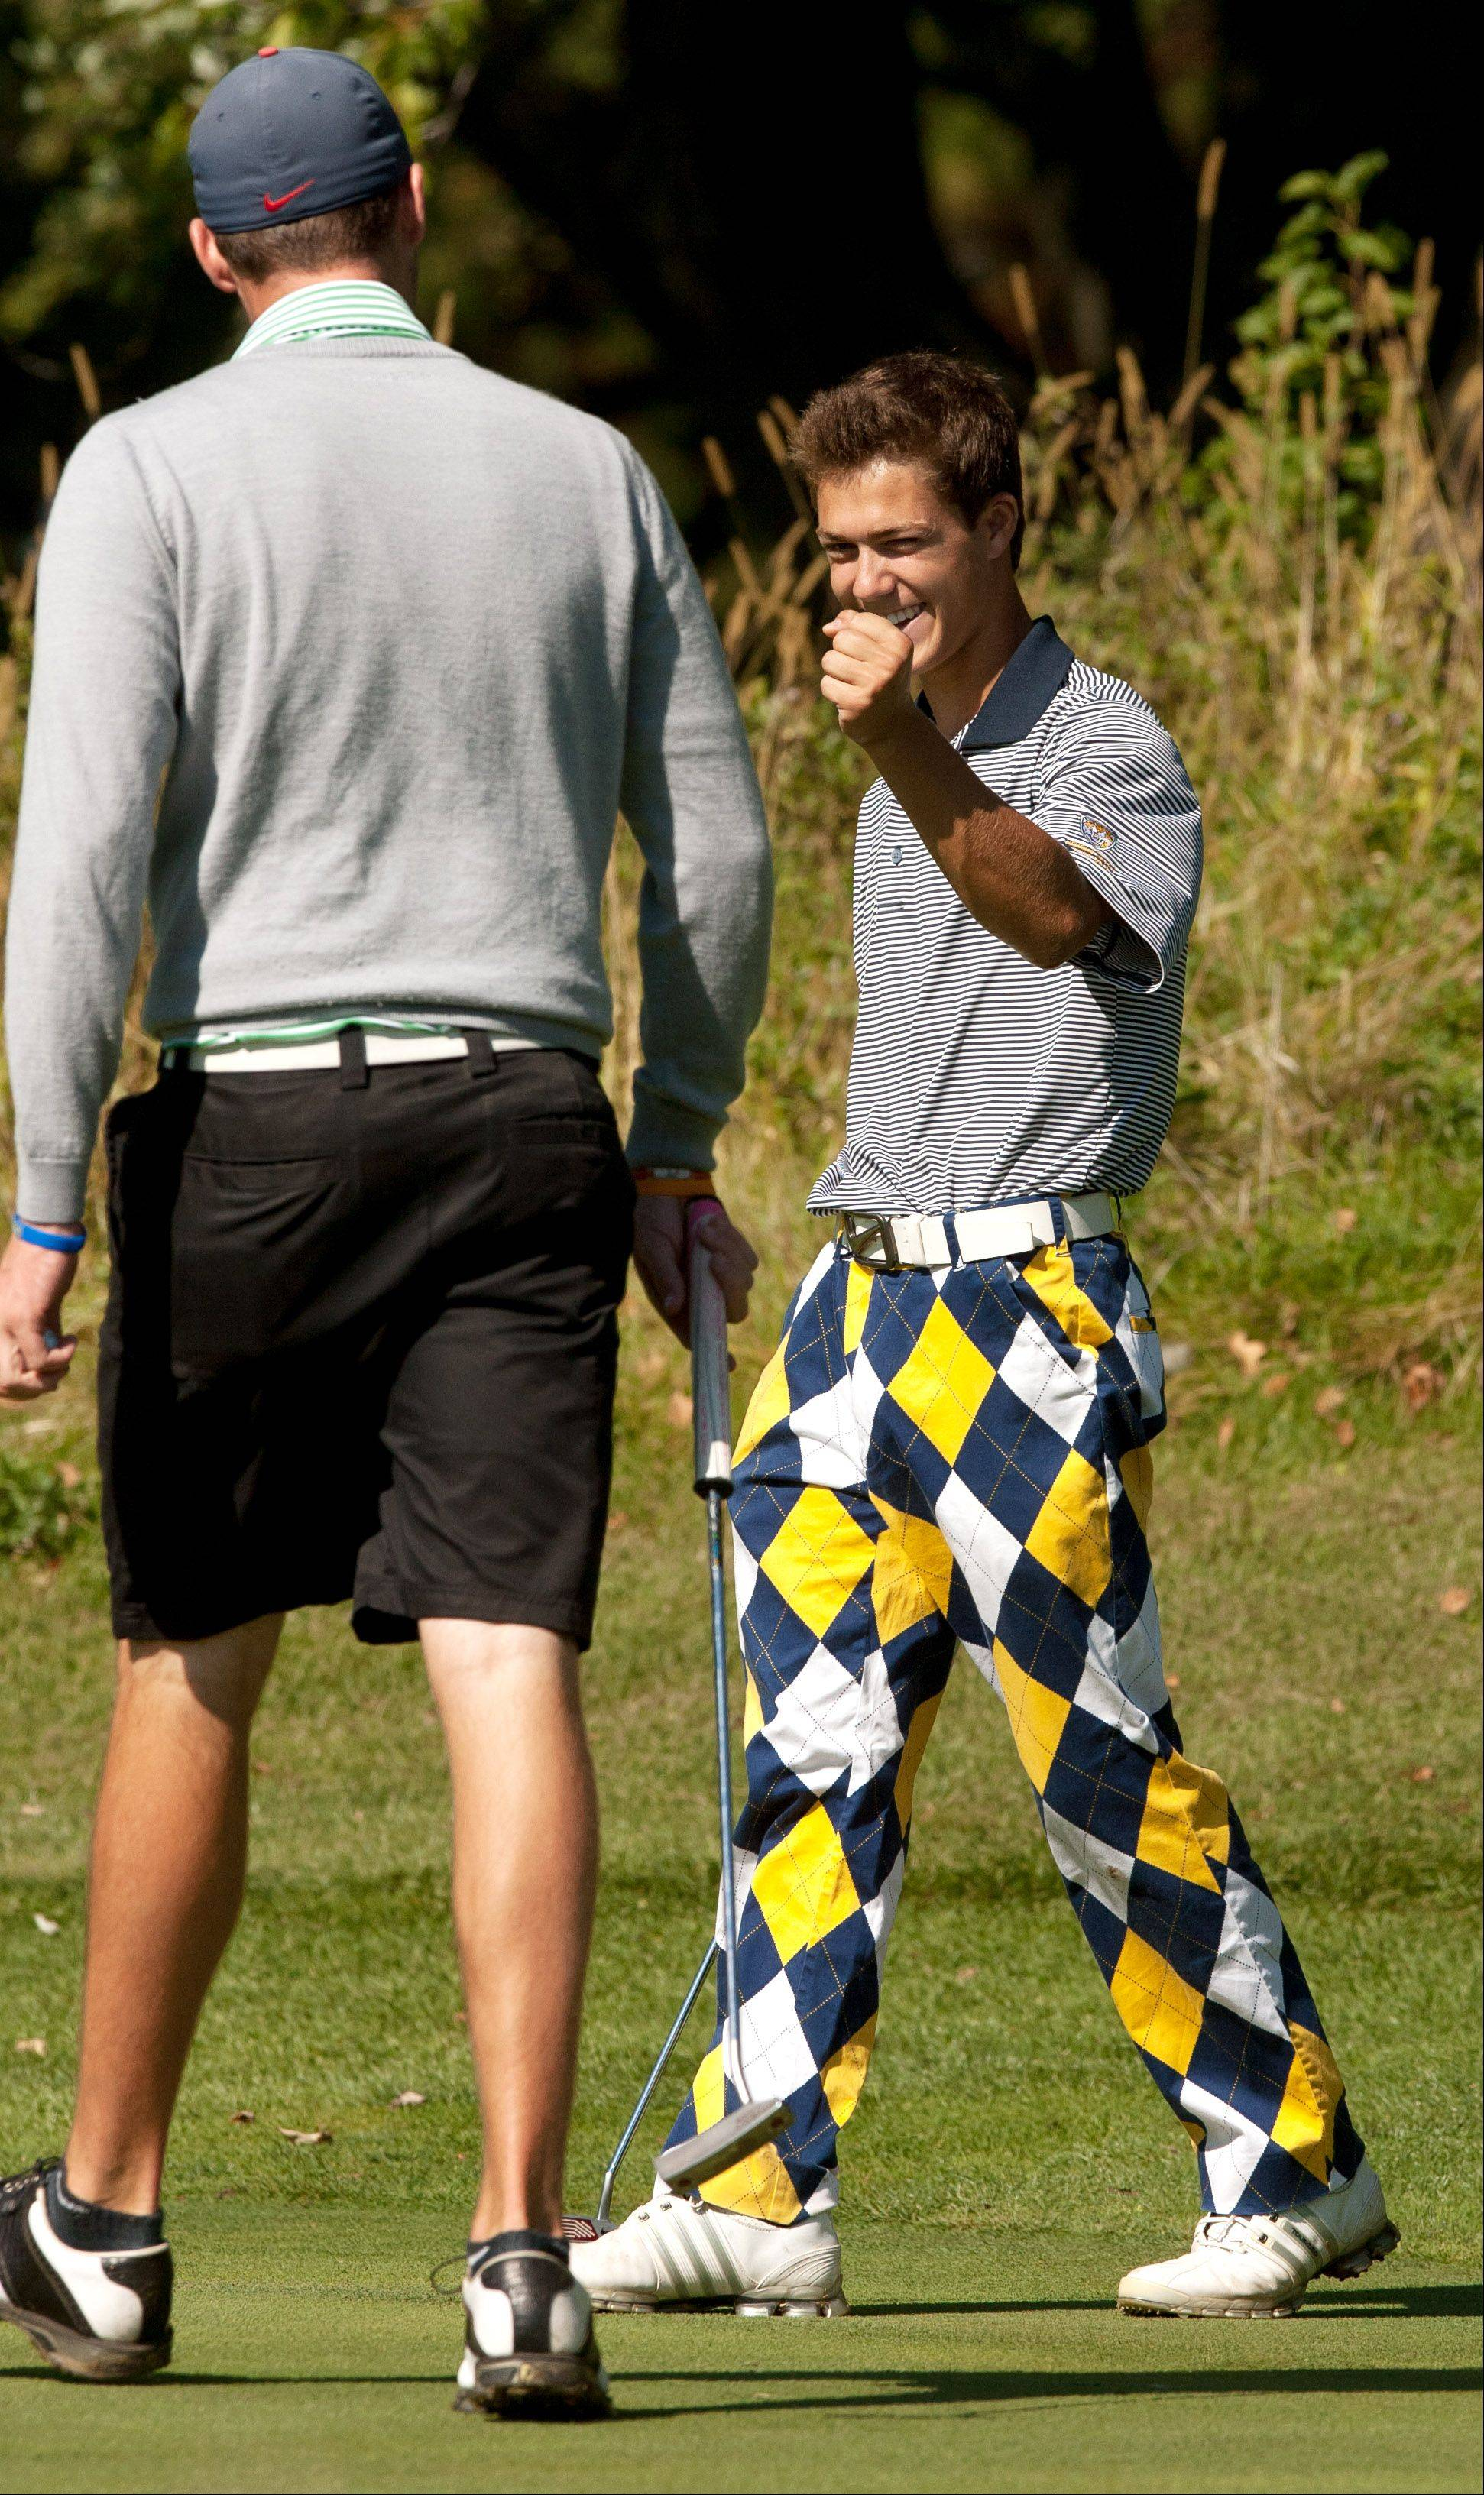 Neuqua Valley's Drew Rouches, right, reacts to sinking a 35 foot putt as he high fives Waubonsie Valley's Jason Marrs, during the Upstate Eight Conference boys golf tournament at St. Andrews Country Club in West Chicago.